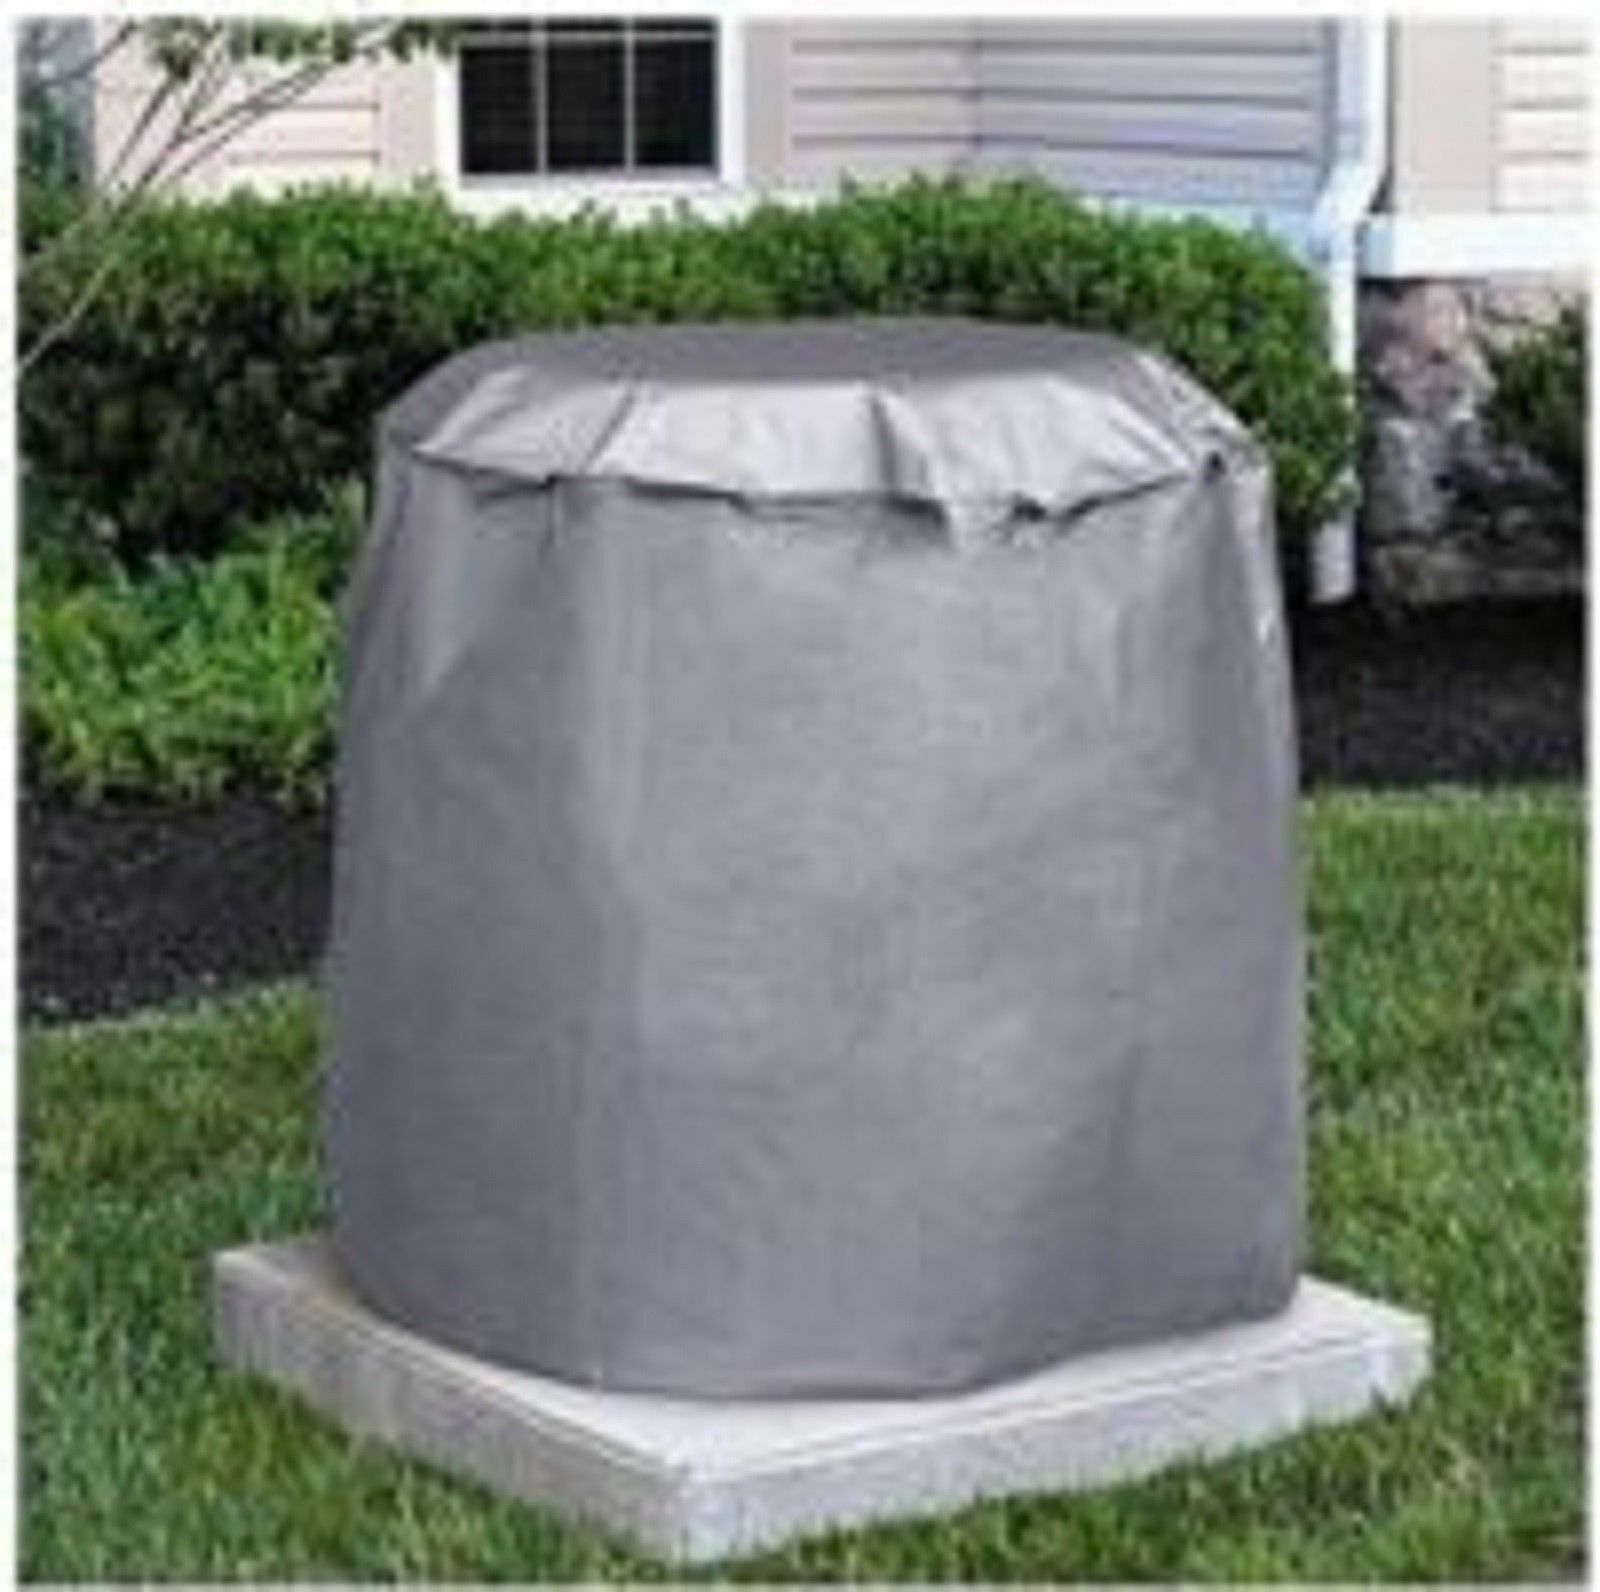 M-D Building Products Air Conditioner Cover 30″ H x 34″ Dia. Gray INCLUDES STRAP Heating, Cooling & Air